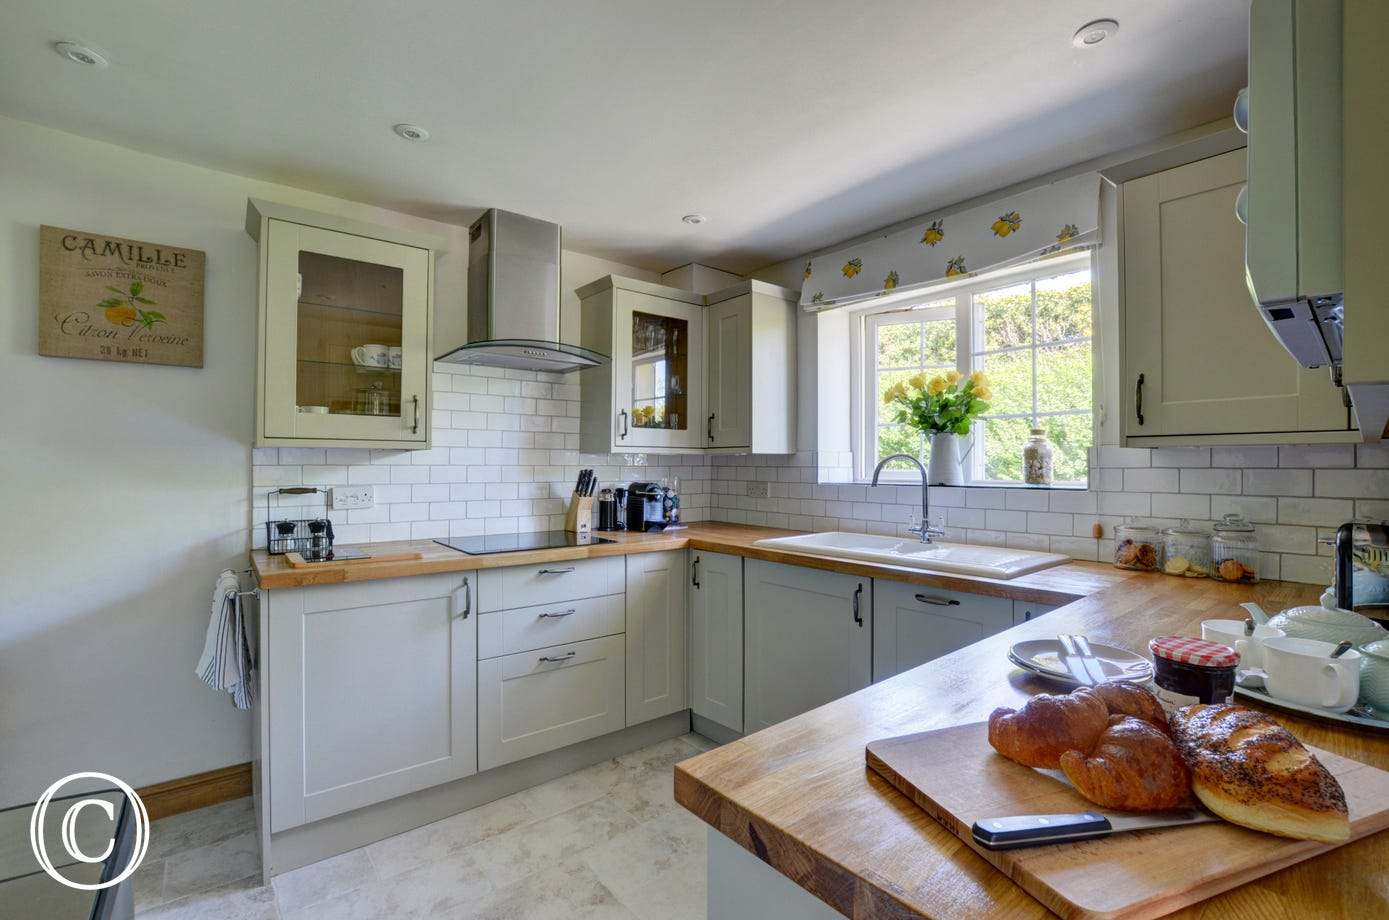 The well-equipped 'country style' kitchen has everything you will need for preparing a meal to enjoy inside or al fresco style in the garden